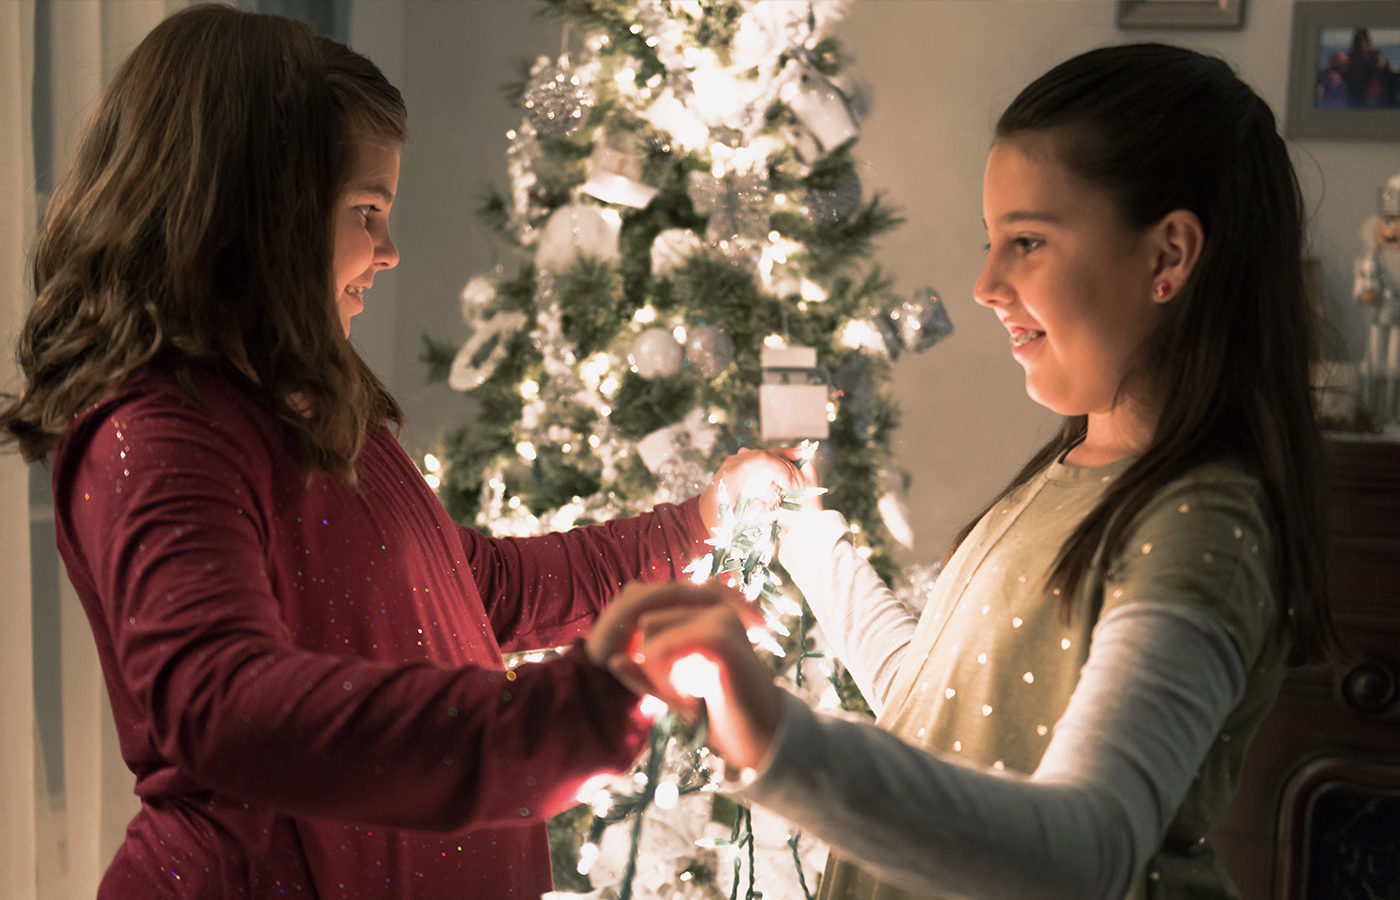 big lots and okeefe reinhard paul debut joyous holiday ad campaign - Big Lots Christmas Eve Hours